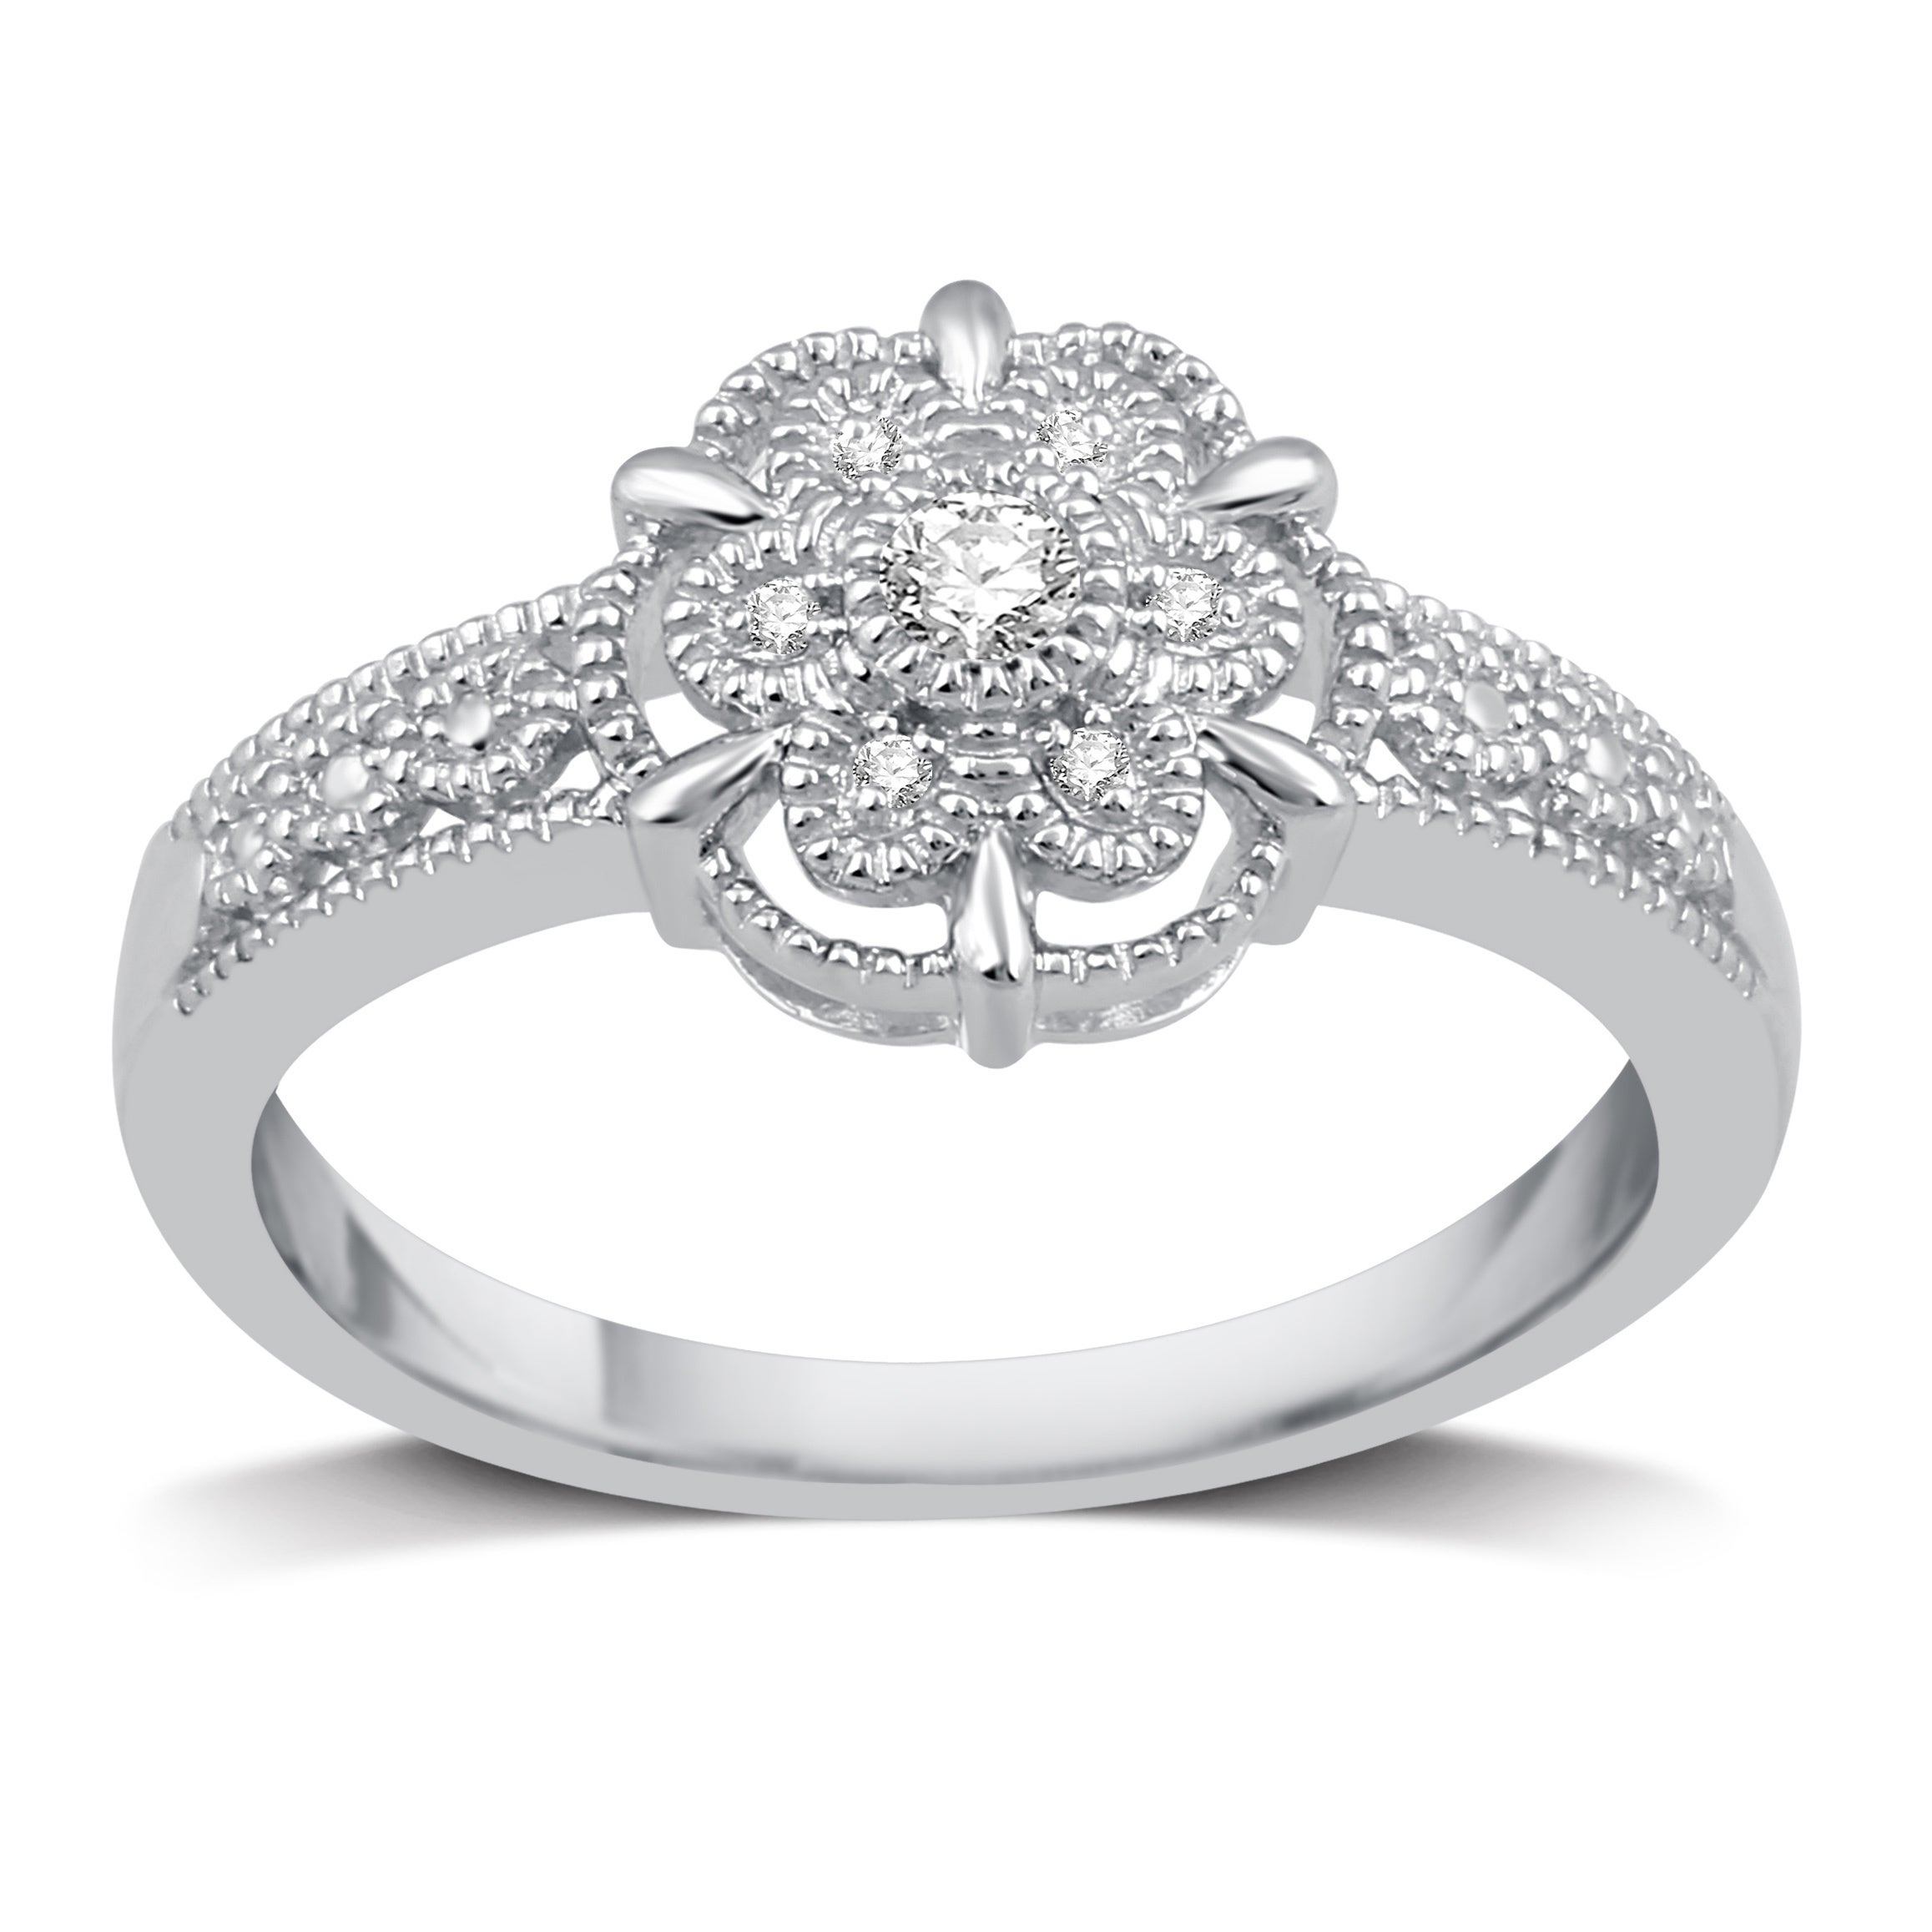 60cde9e3b2a Sterling Silver 1/20ct TDW Diamond Flower Shaped Ring